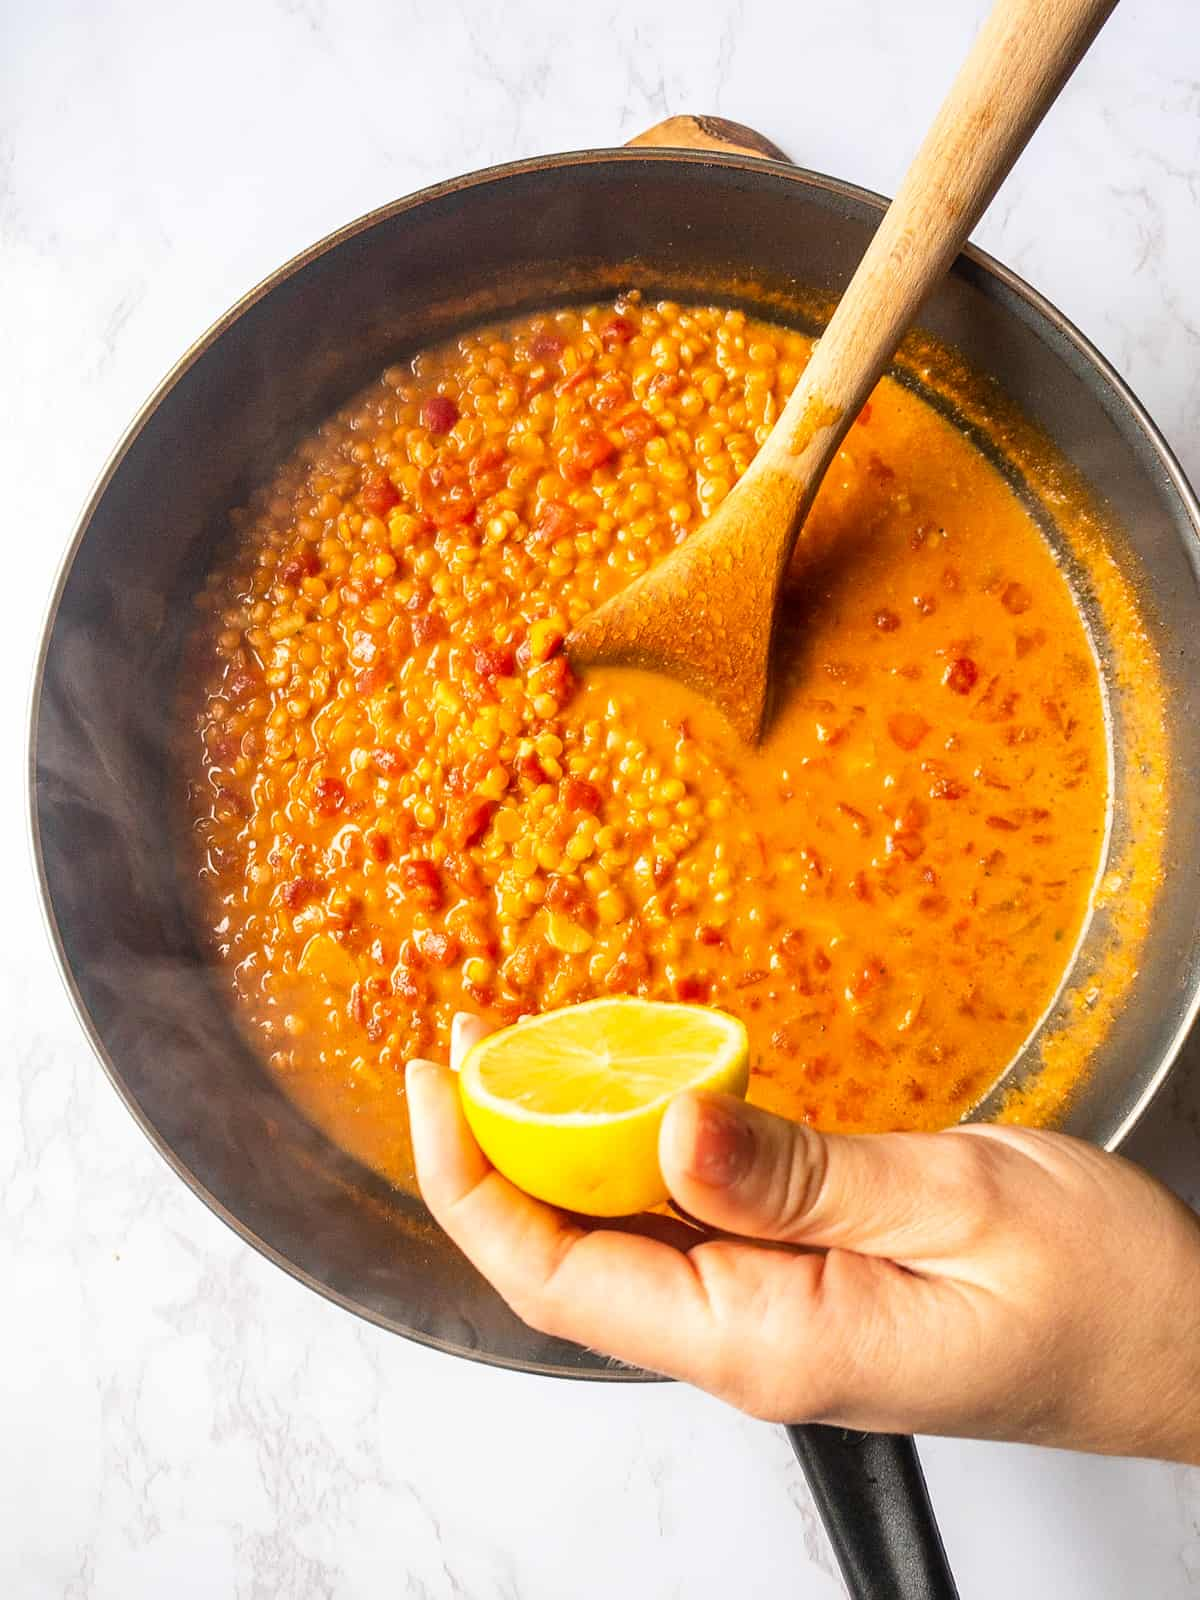 a hand squeezing a lemon over a pan with dal